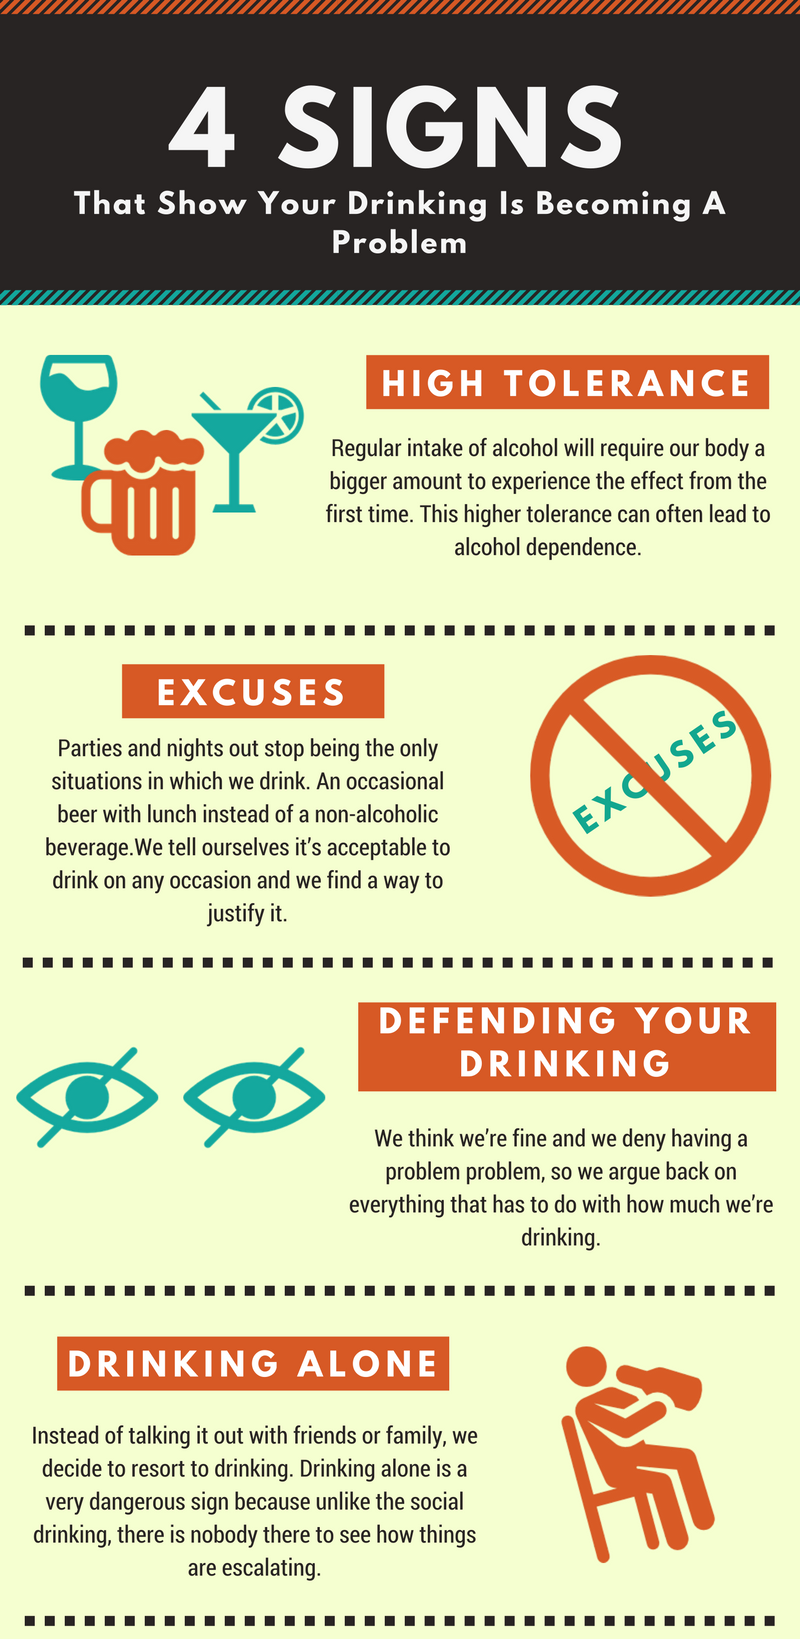 infographic-4-signs-that-show-your-drinking-is-becoming-a-problem